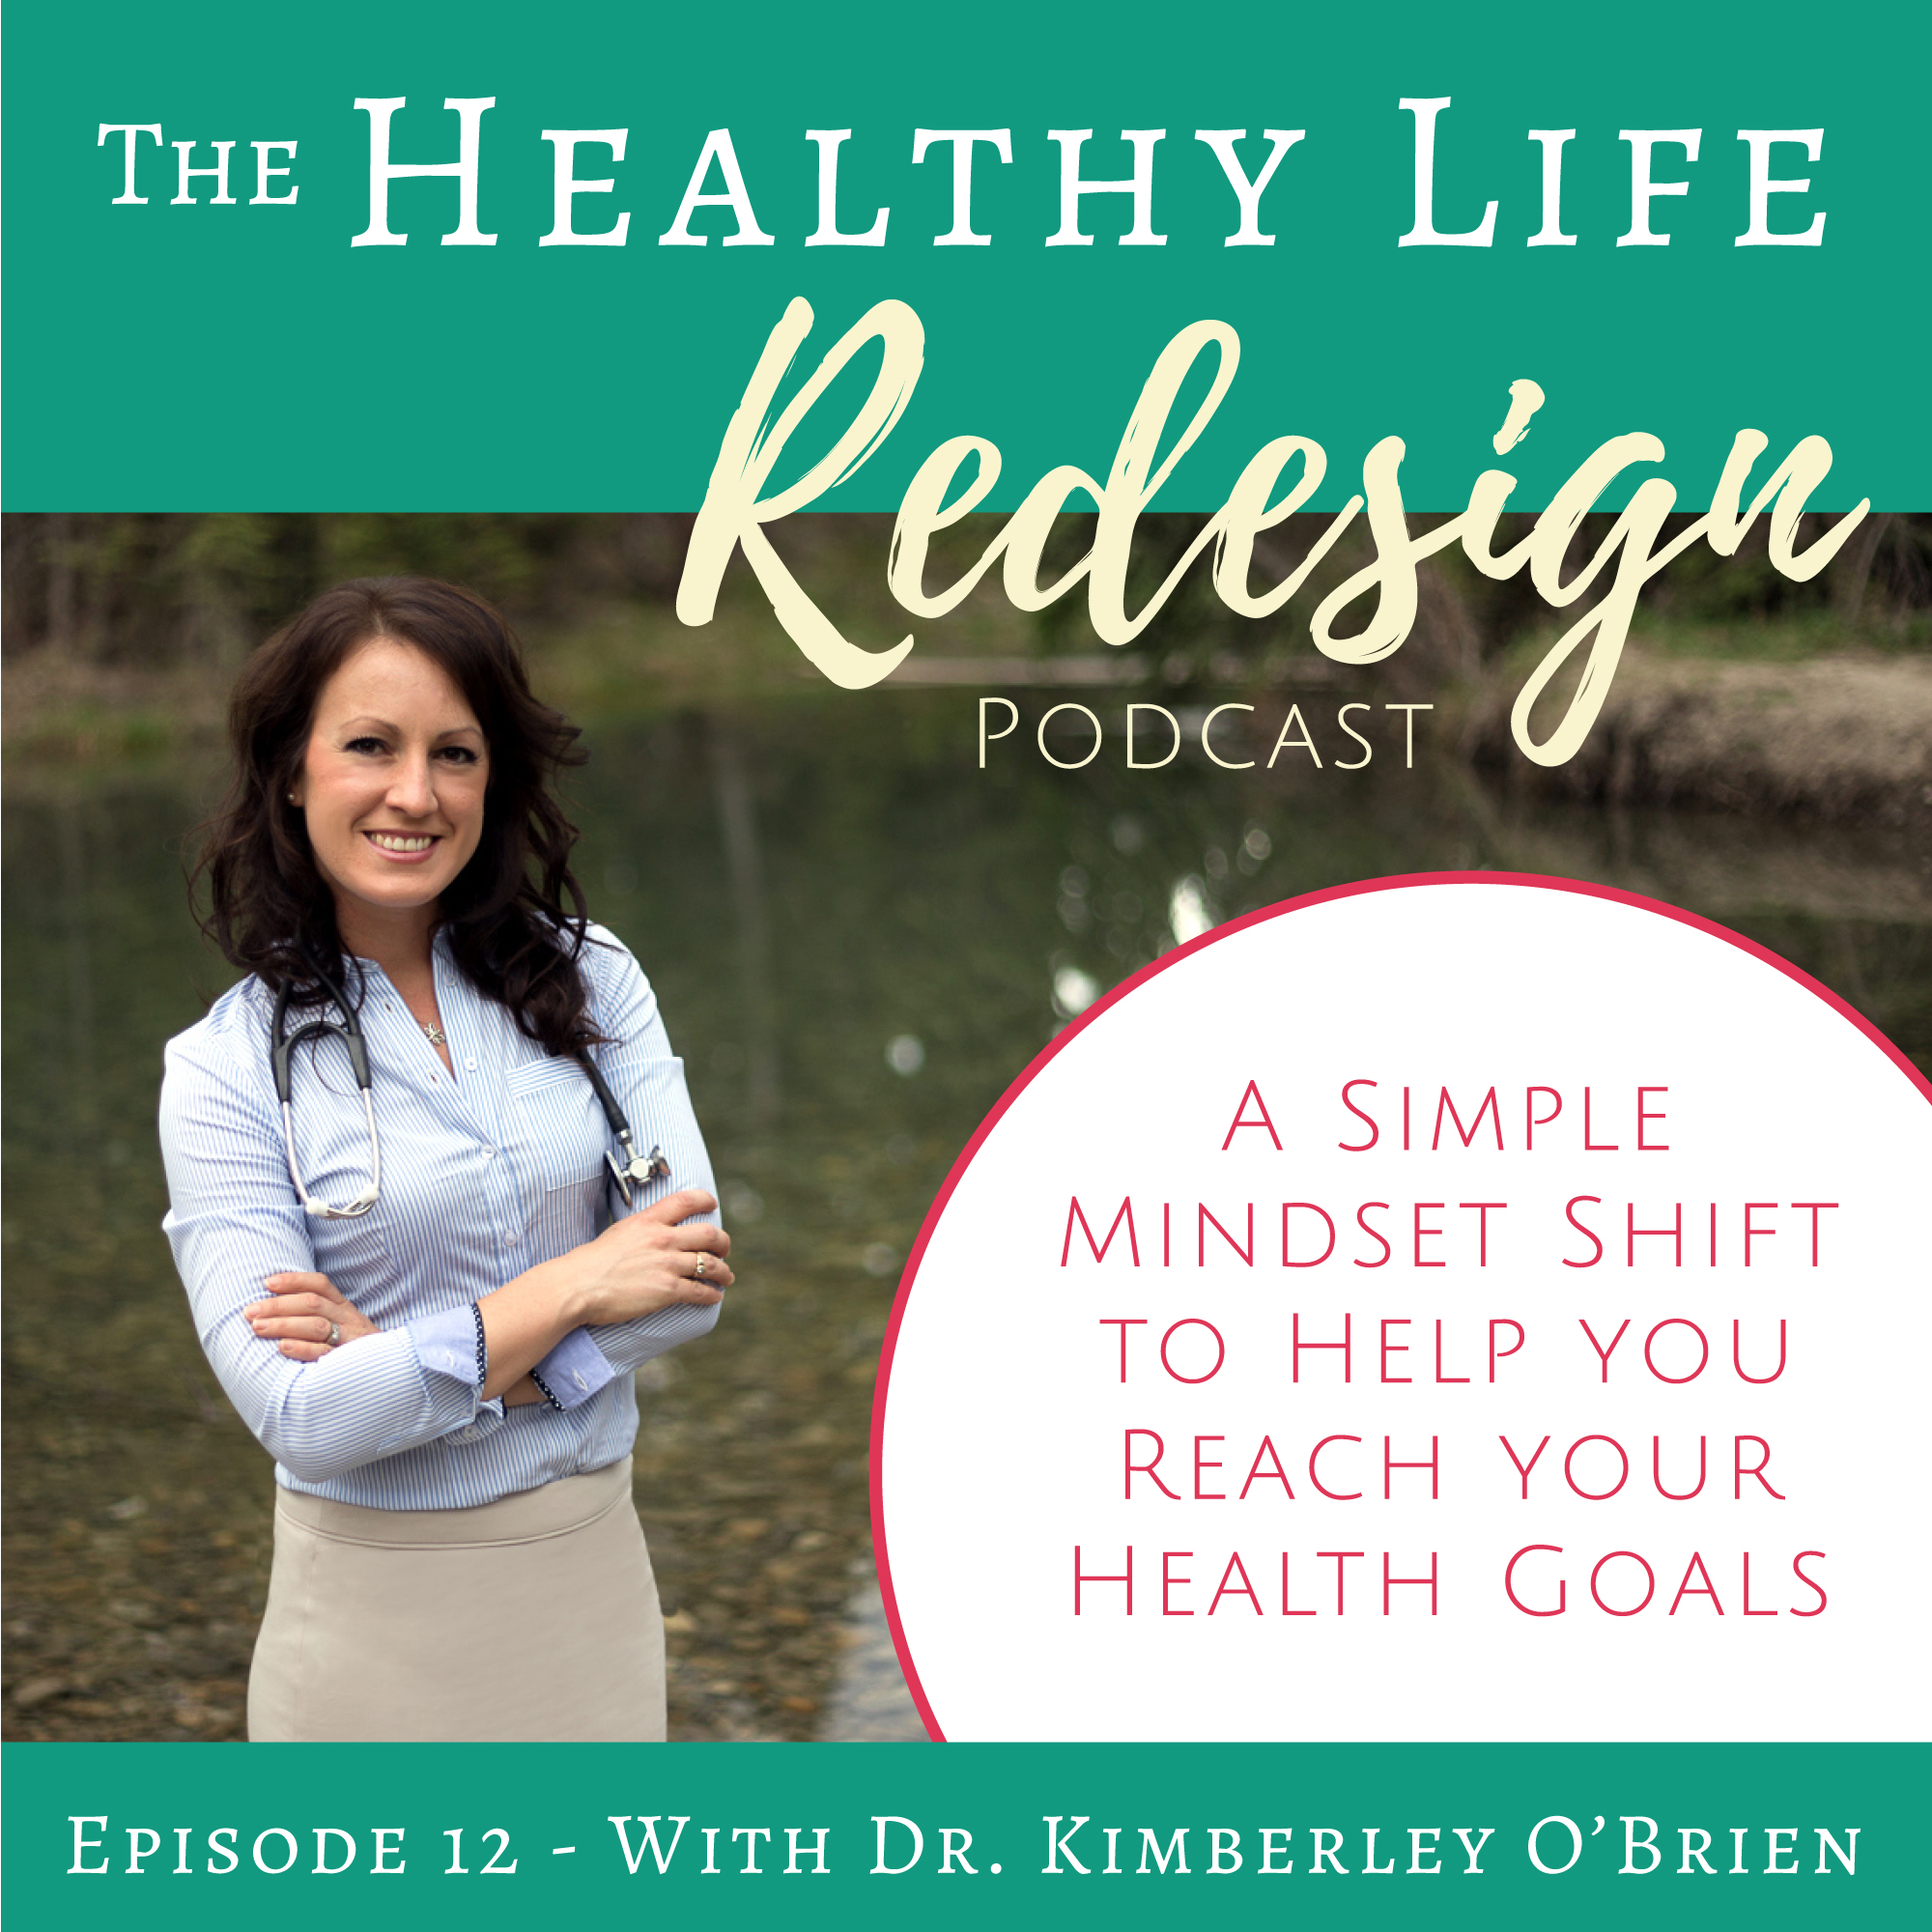 Healthy Life Redesign Podcast Episode 12